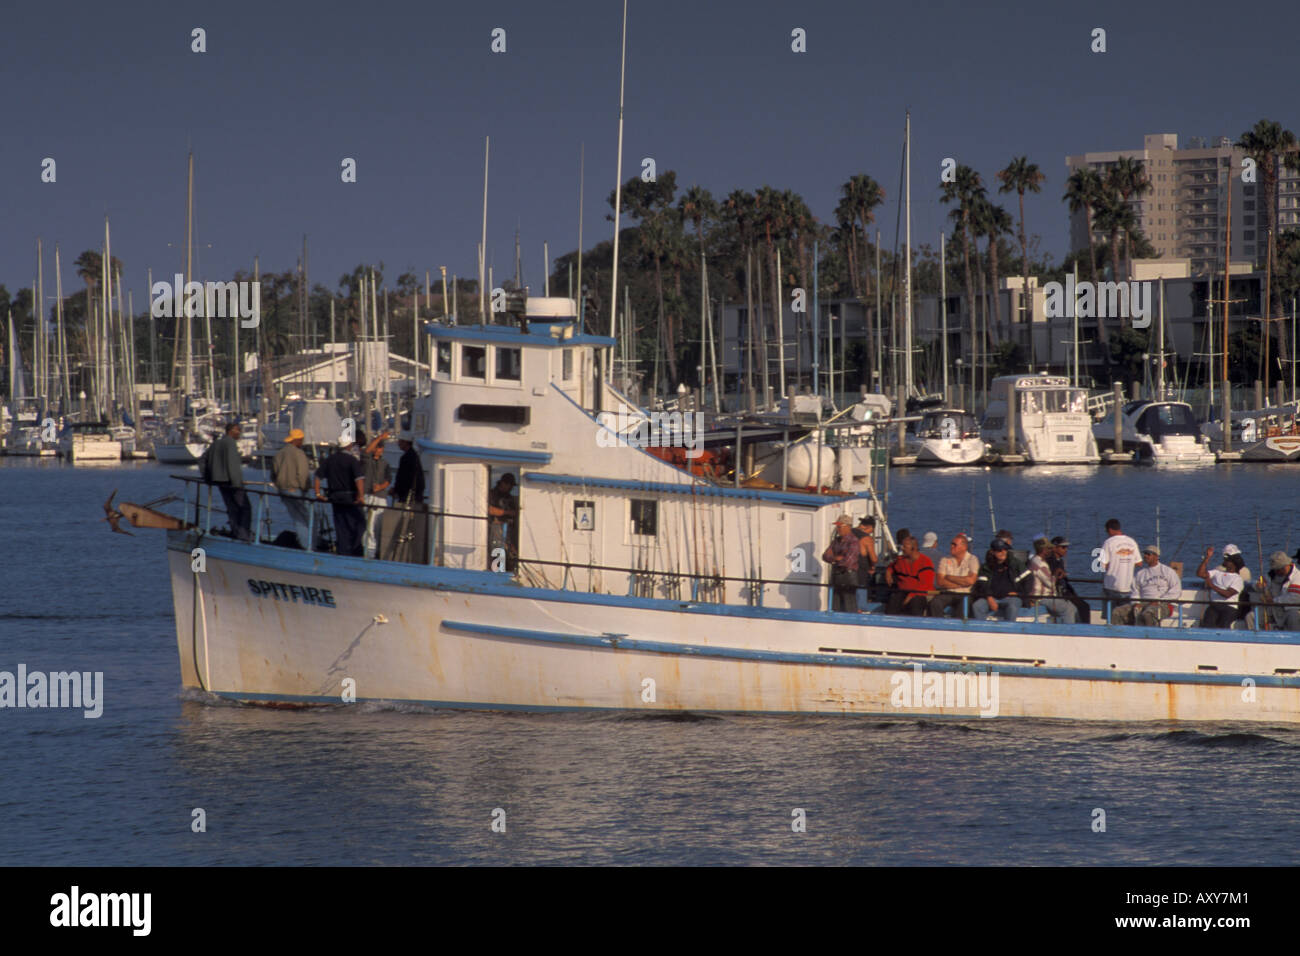 Fishing Party Boat Charter Tour leaves for sea from Marina